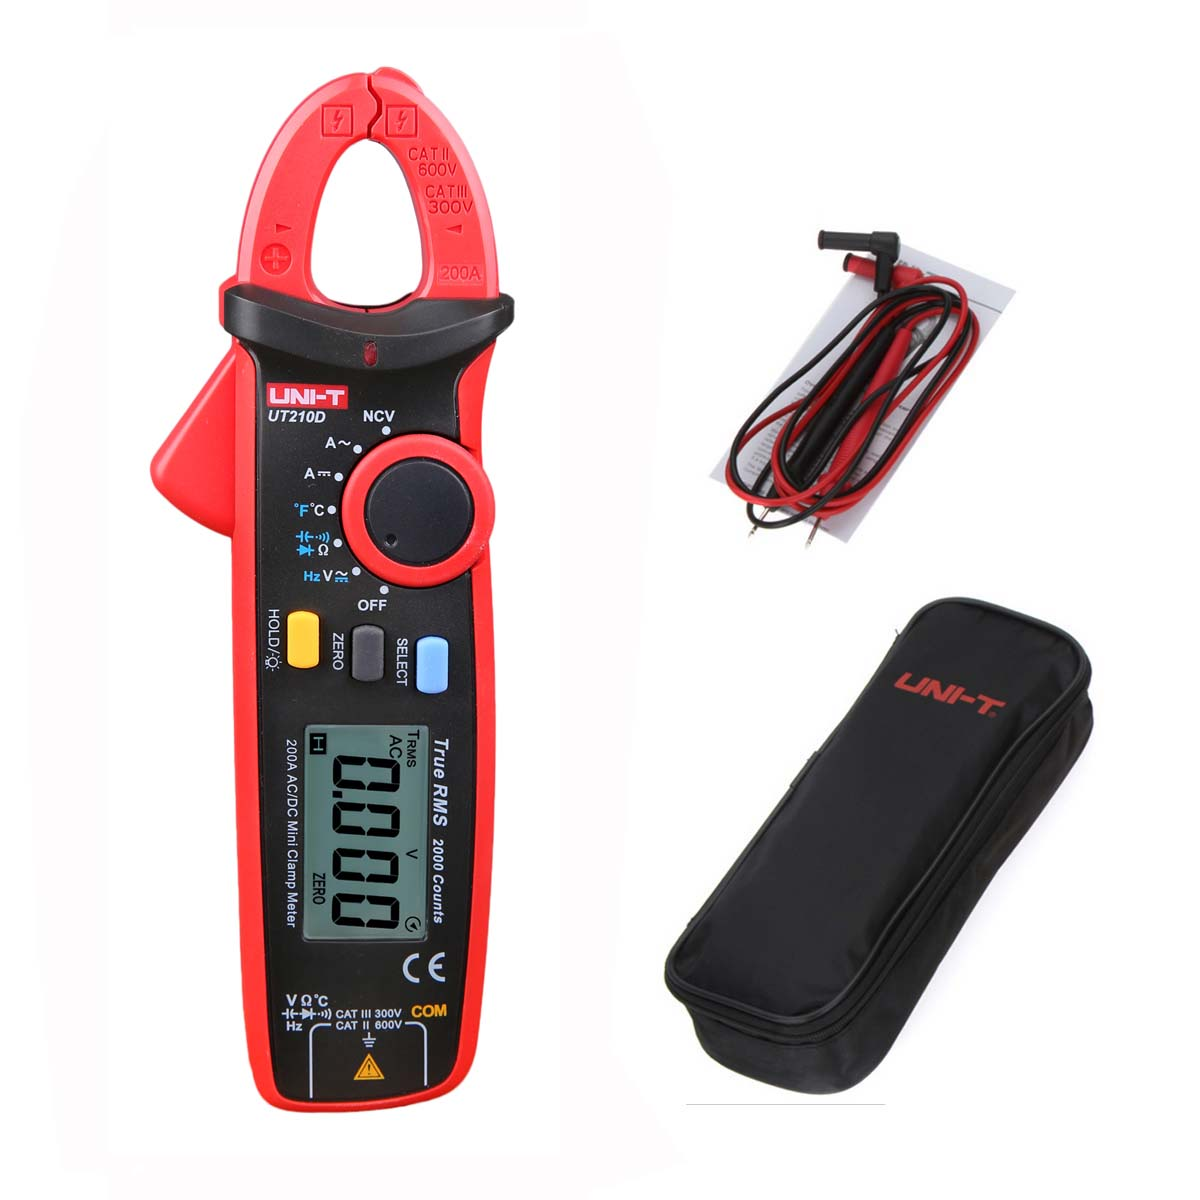 M128 Digital Clamp Meter Multimeter UNI-T UT210D AC/DC Current Voltage Resistance CapacitanceTemperature Measurement Auto Range uni t ut205 ture rms auto manual range digital handheld clamp meter multimeter ac dc voltage aca test tool